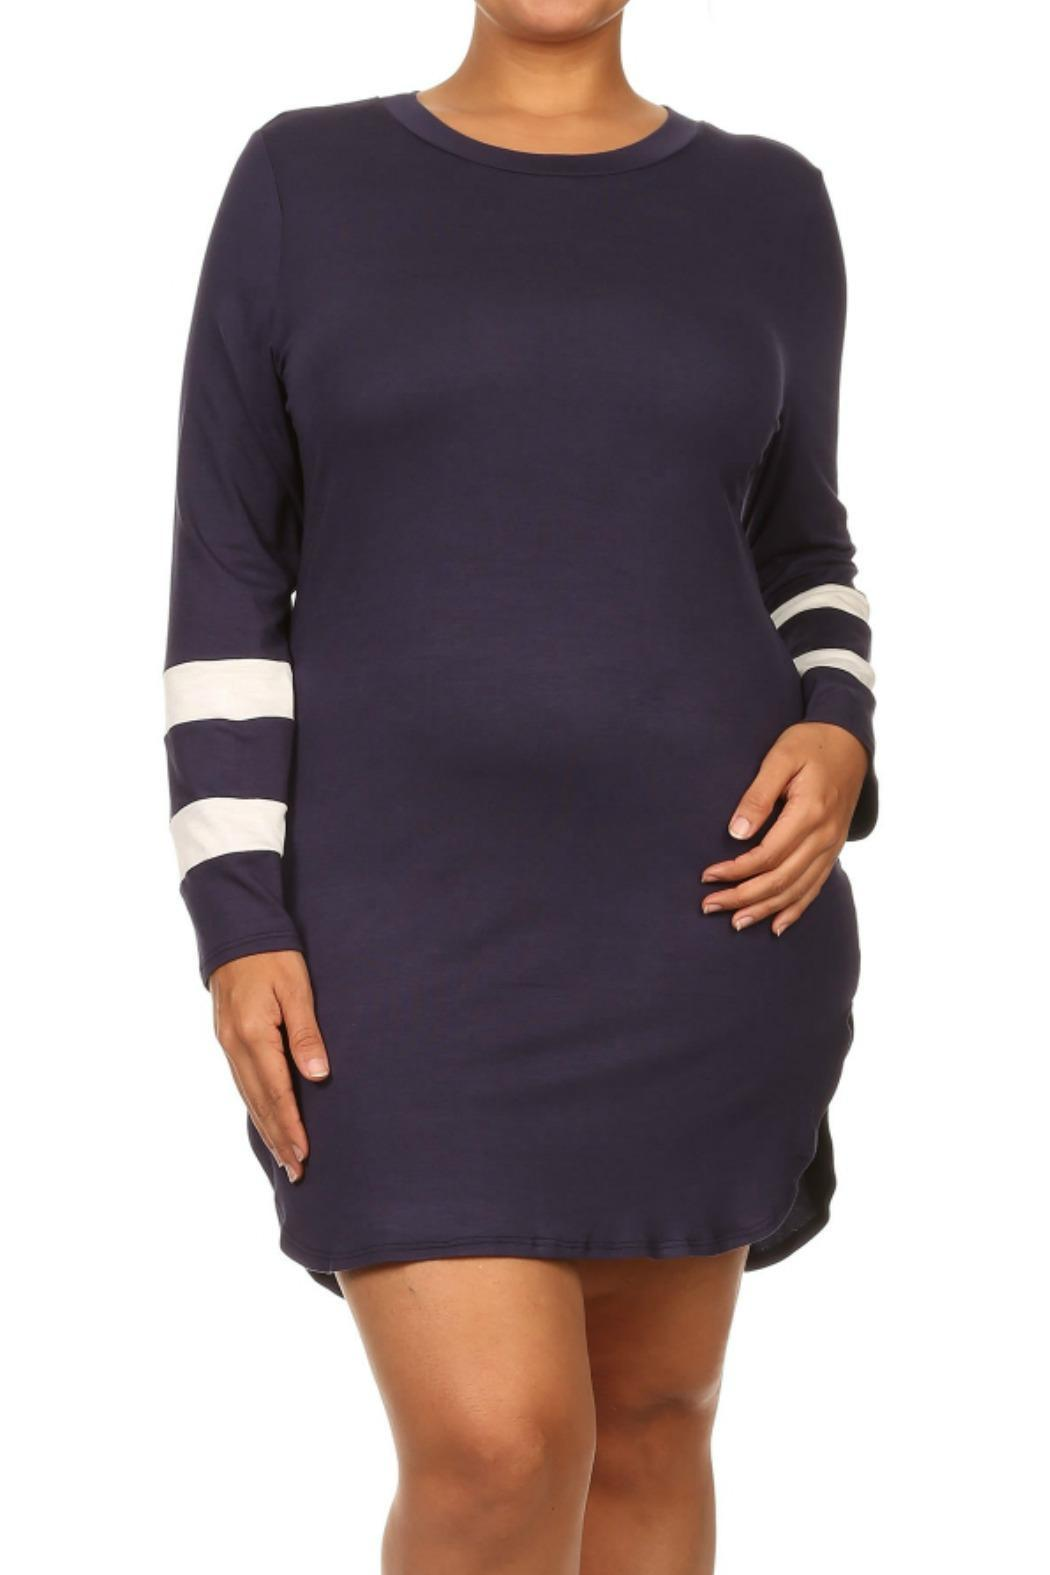 Find Me Plus Football Jersey Dress From Atlanta By